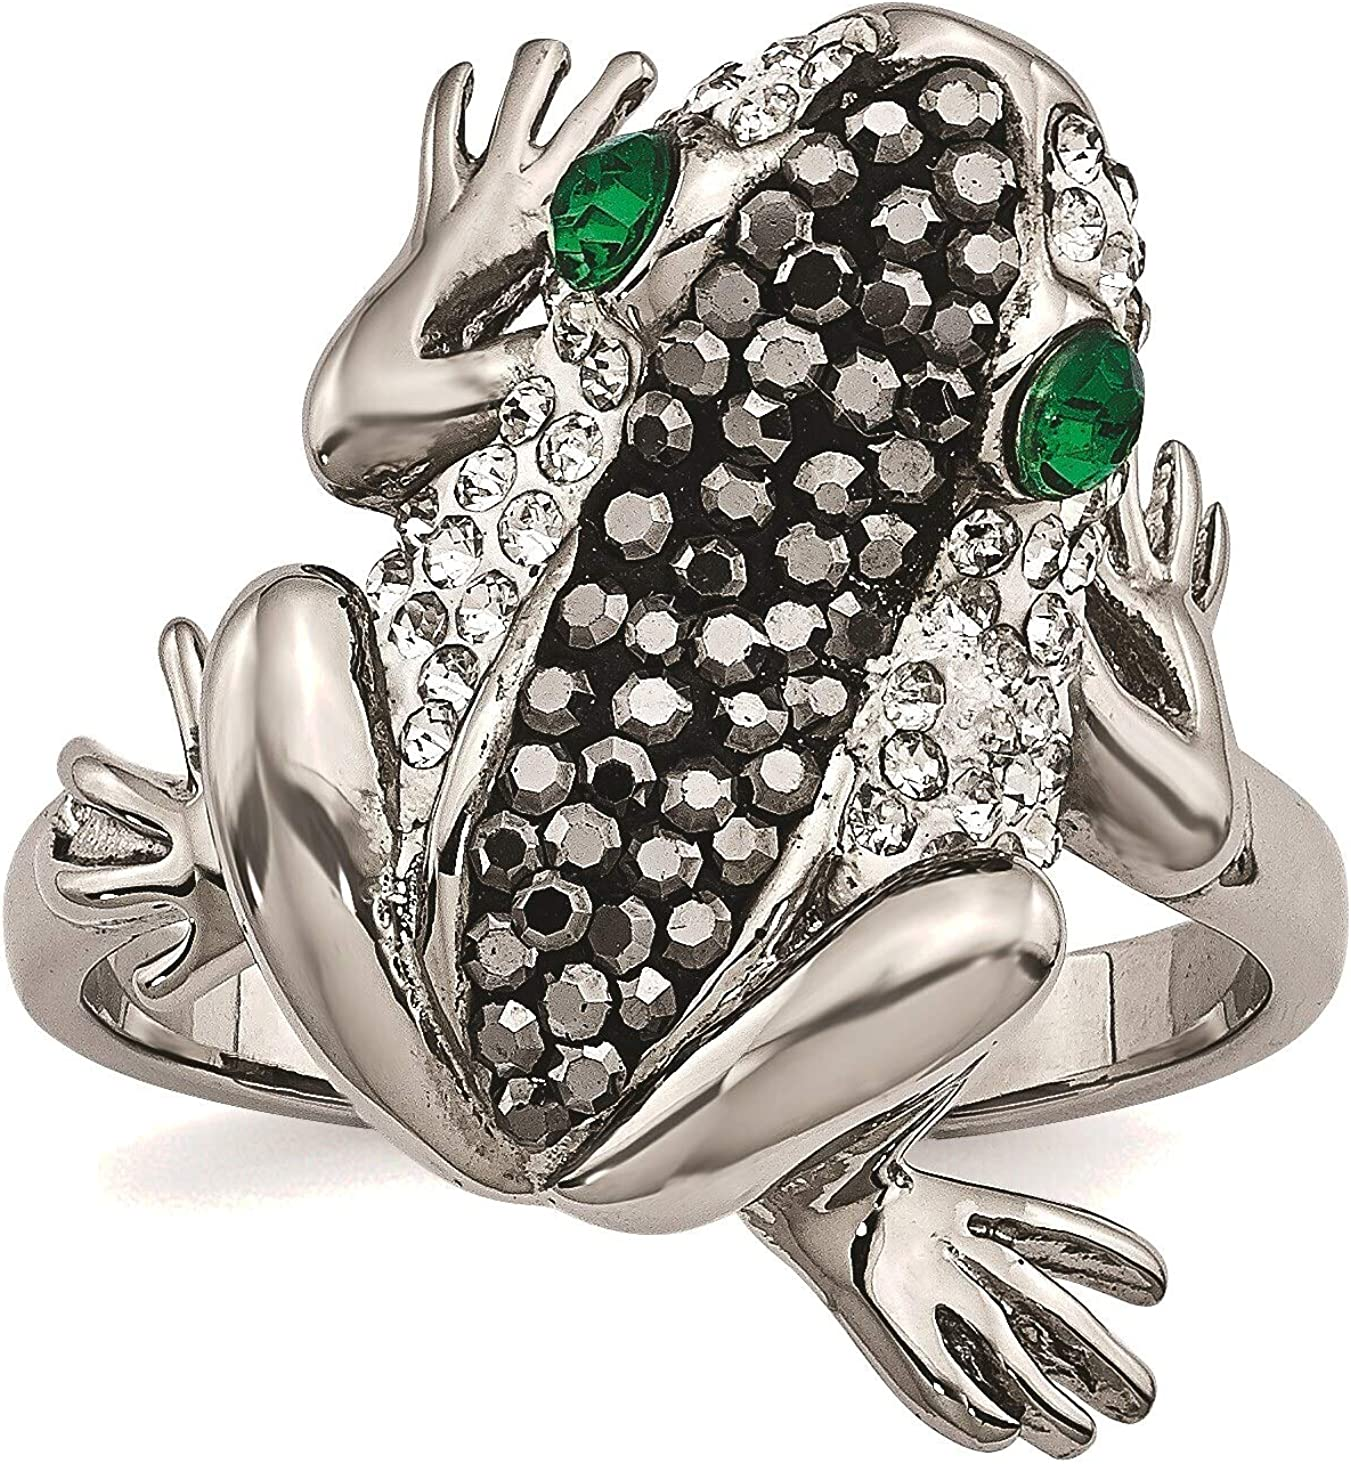 Bonyak Jewelry Stainless Very popular! Steel Polished Crystal with 2021 model i Ring Frog